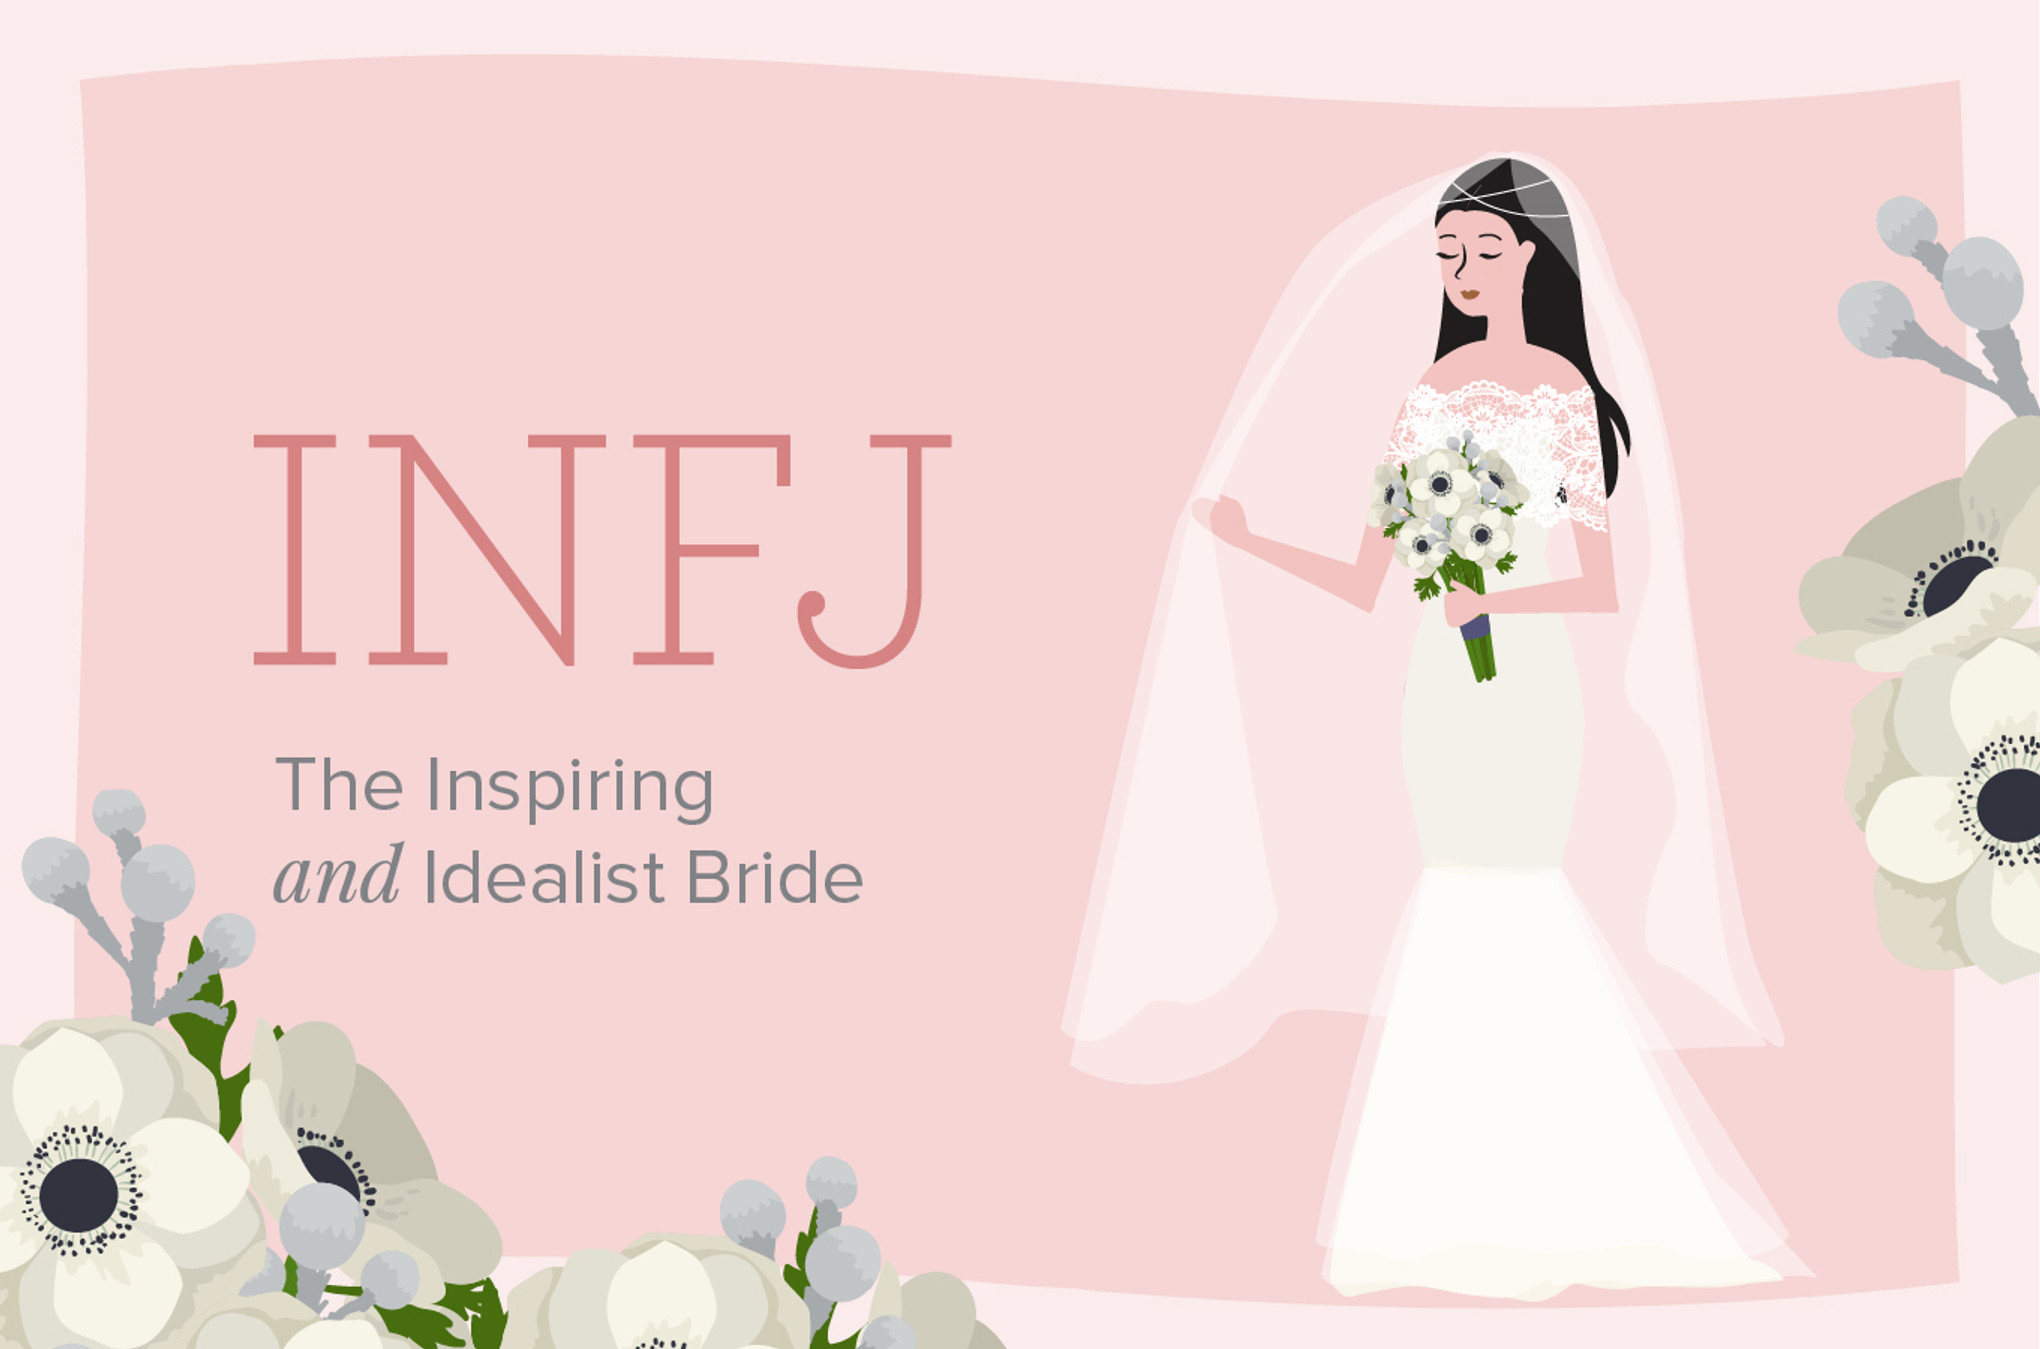 What Kind of Bride Are You Based on Your Myers-Briggs